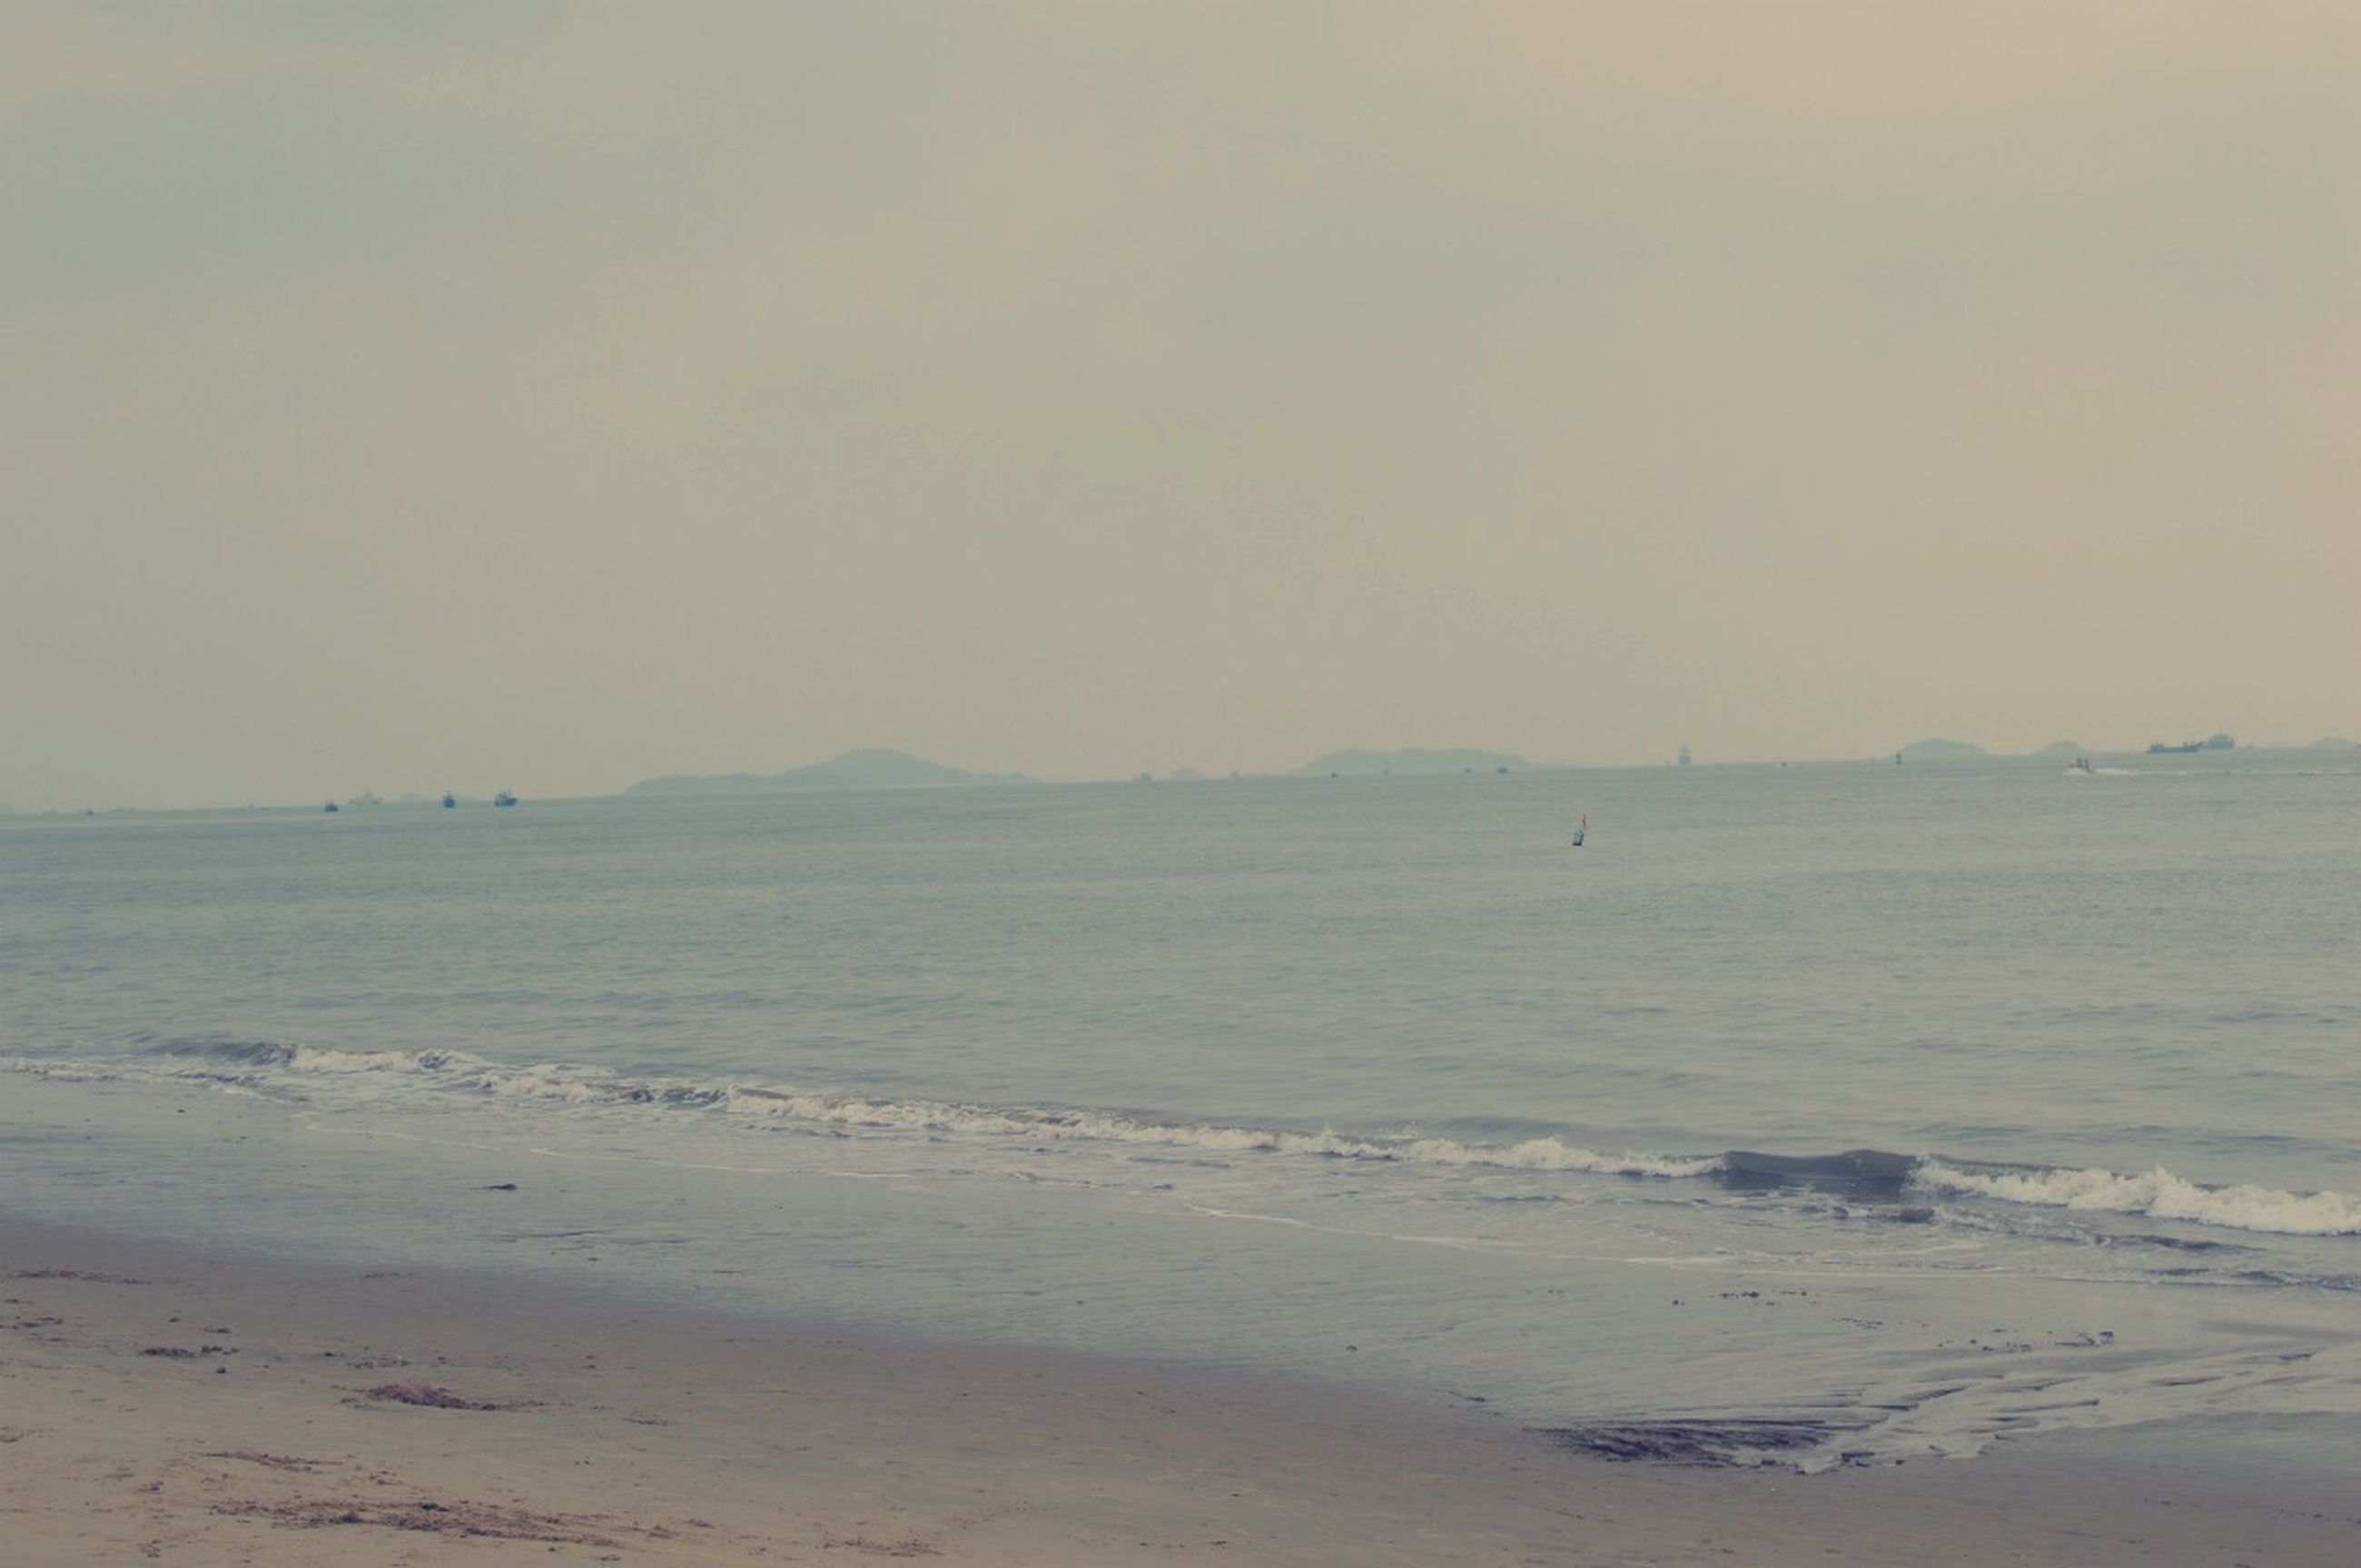 sea, water, beach, shore, tranquil scene, scenics, sand, tranquility, sky, beauty in nature, horizon over water, nature, wave, idyllic, coastline, nautical vessel, outdoors, remote, copy space, transportation